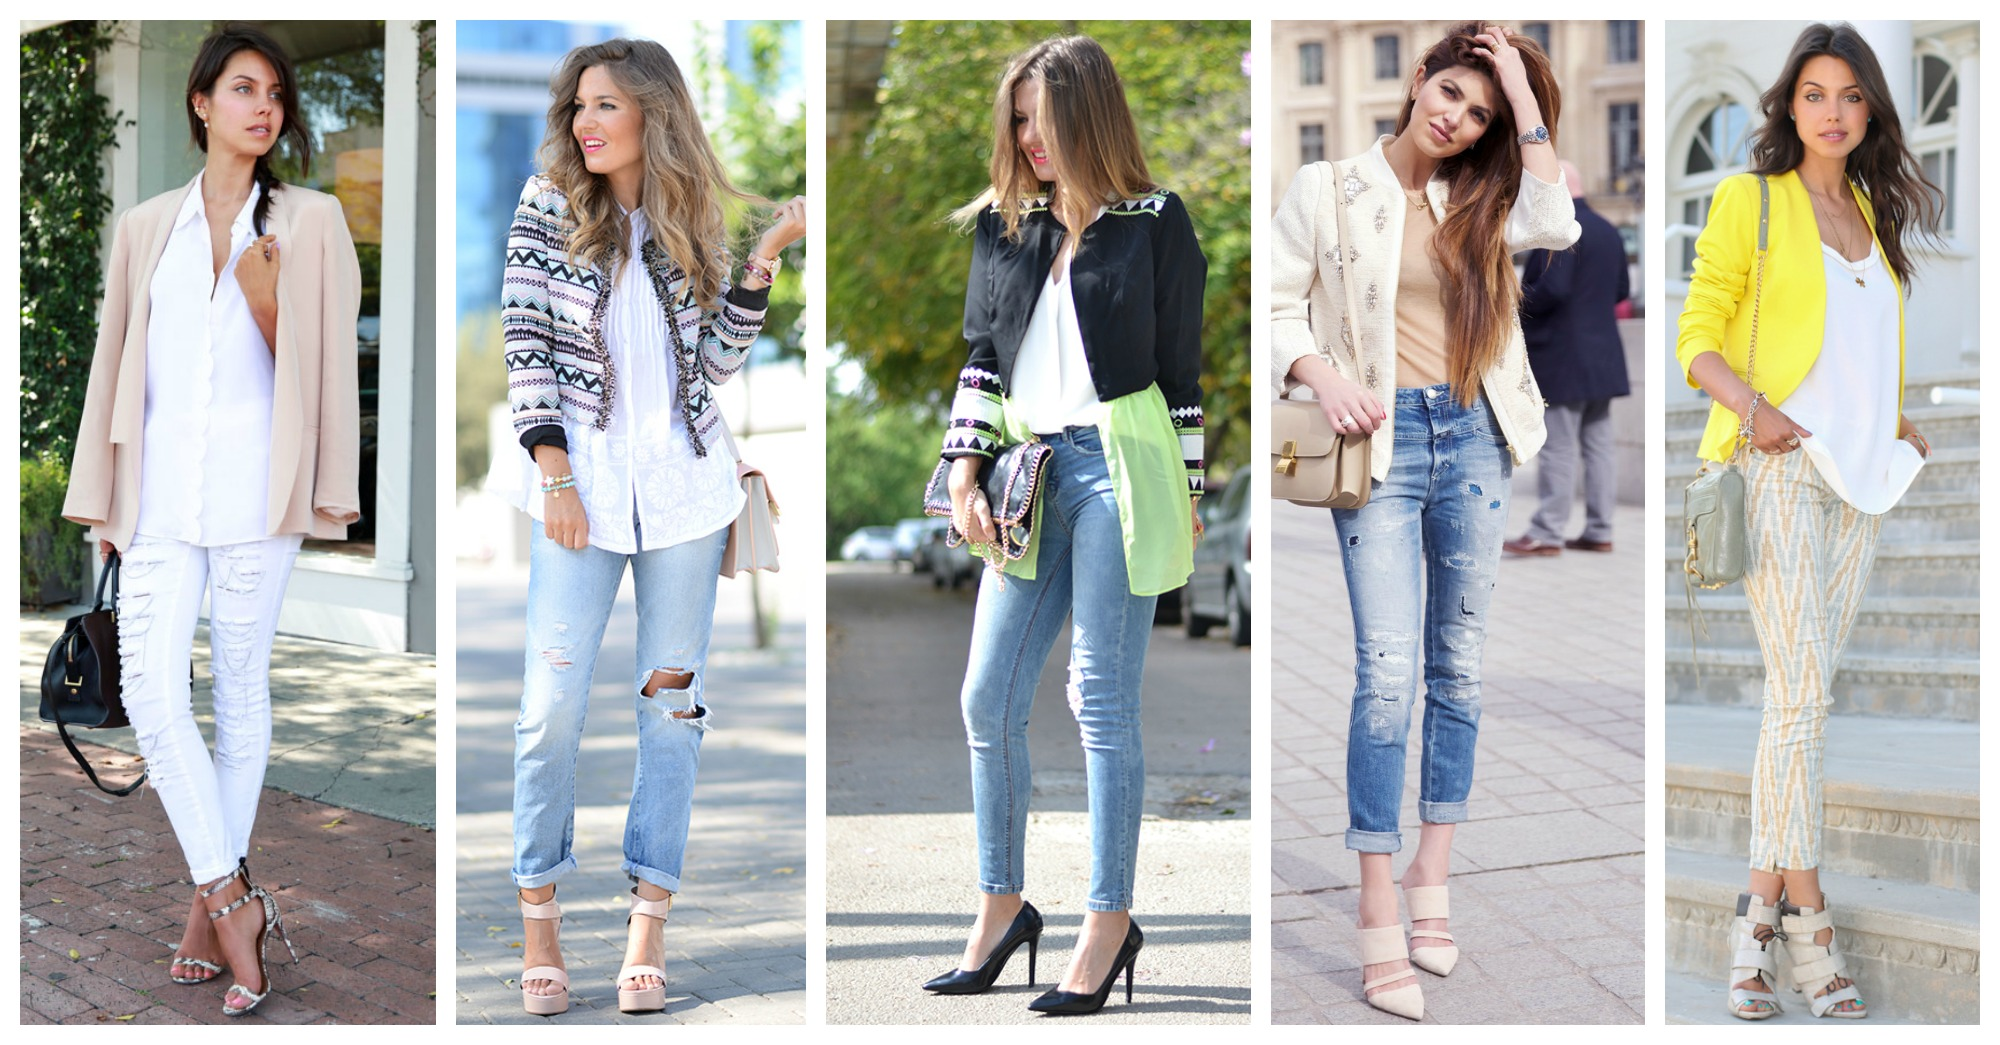 15 Fashionable Early Spring Outfits to Copy Right Now